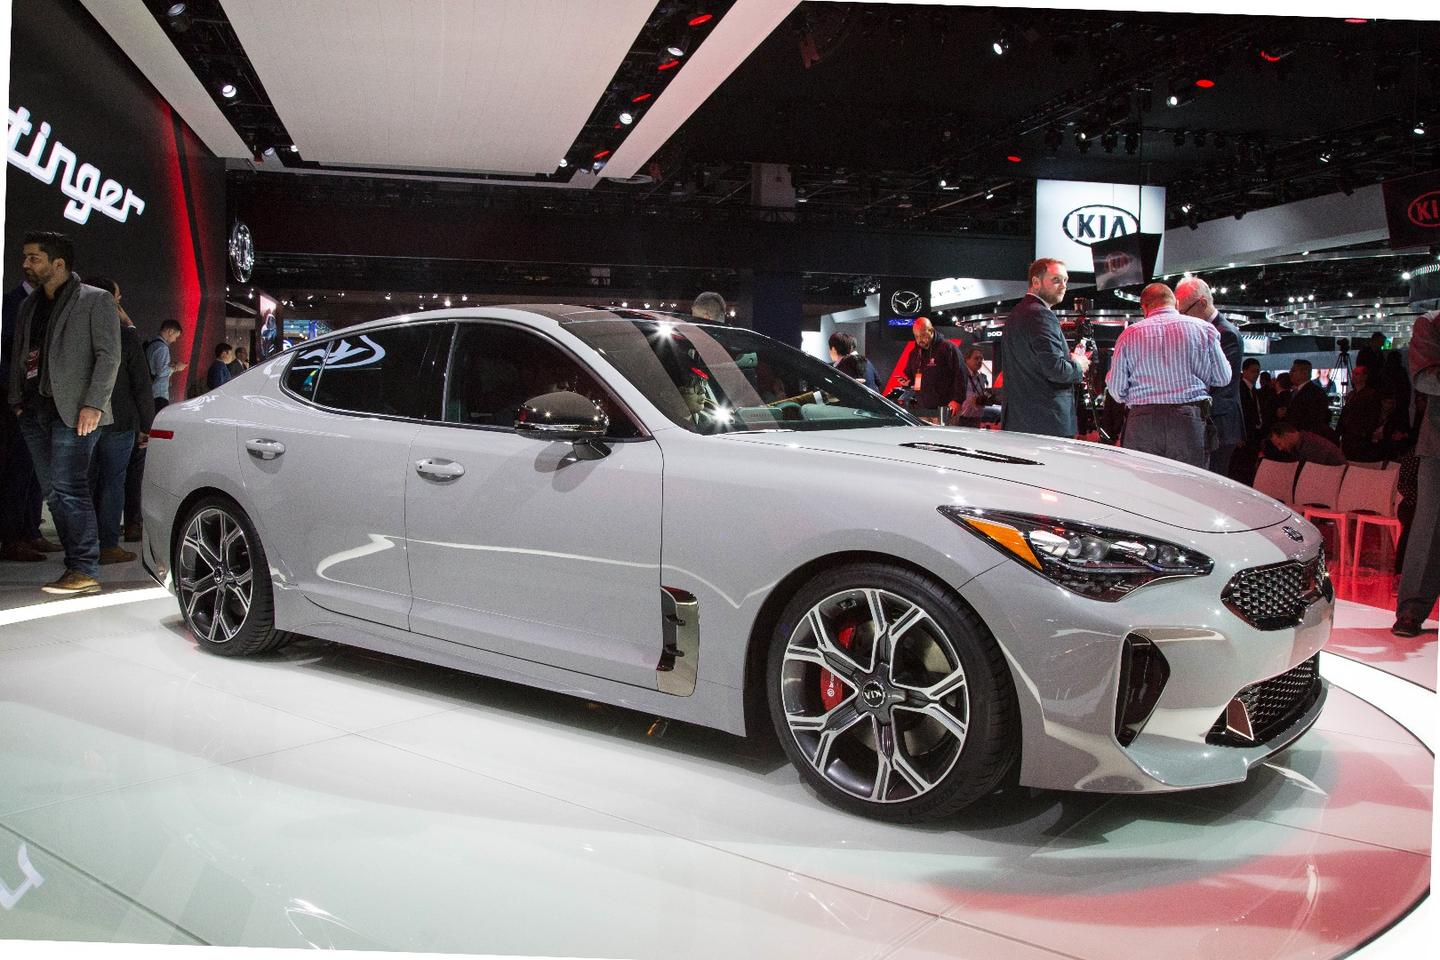 Kia reveals the Stinger at NAIAS 2017